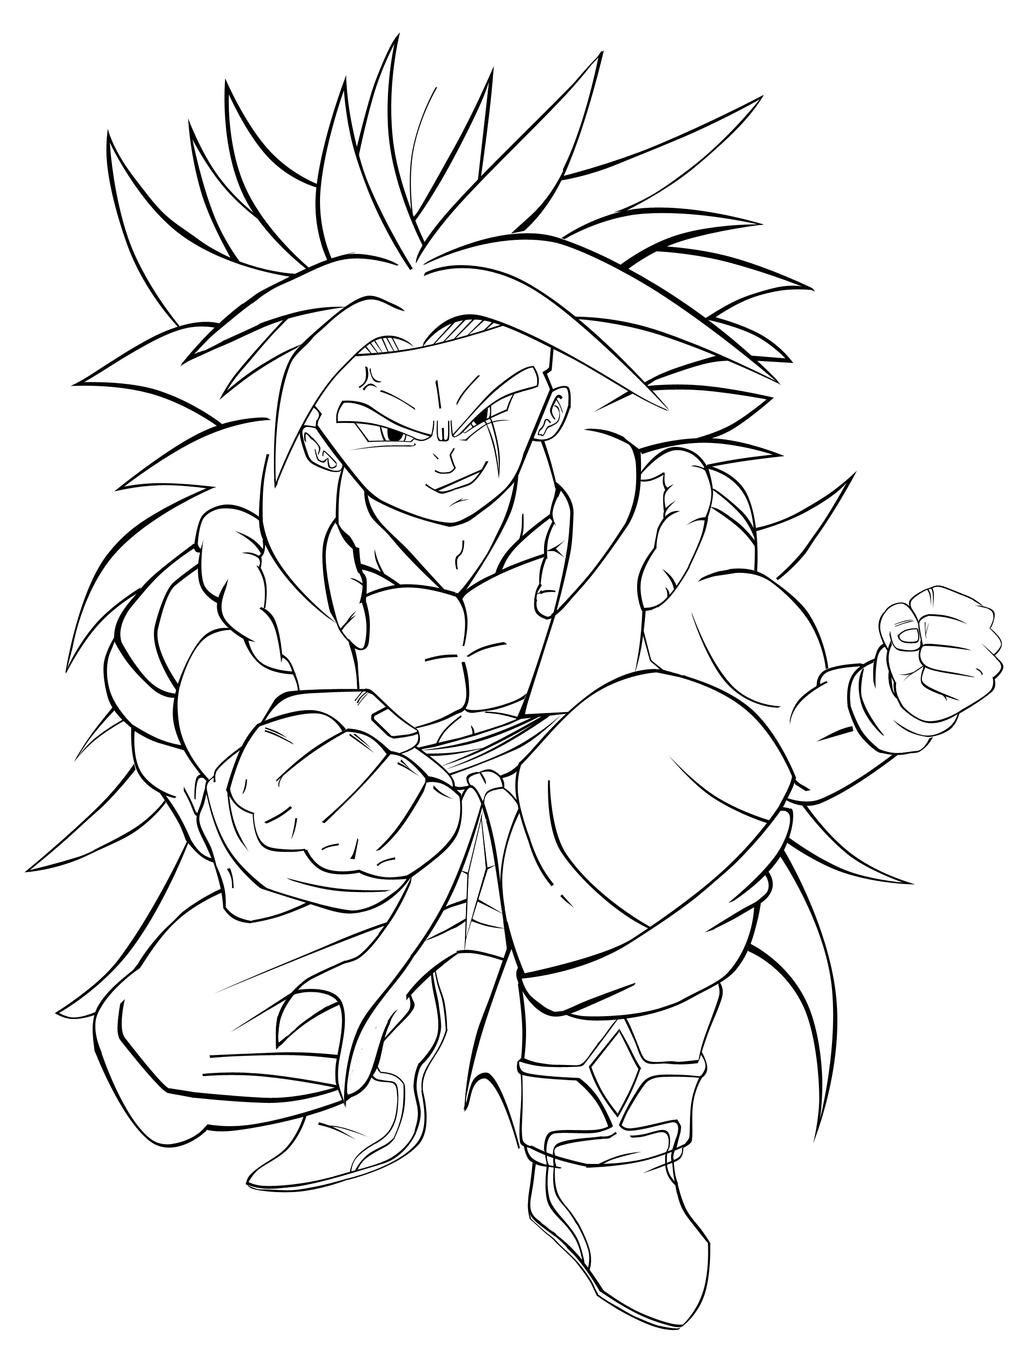 broly coloring pages - photo#33